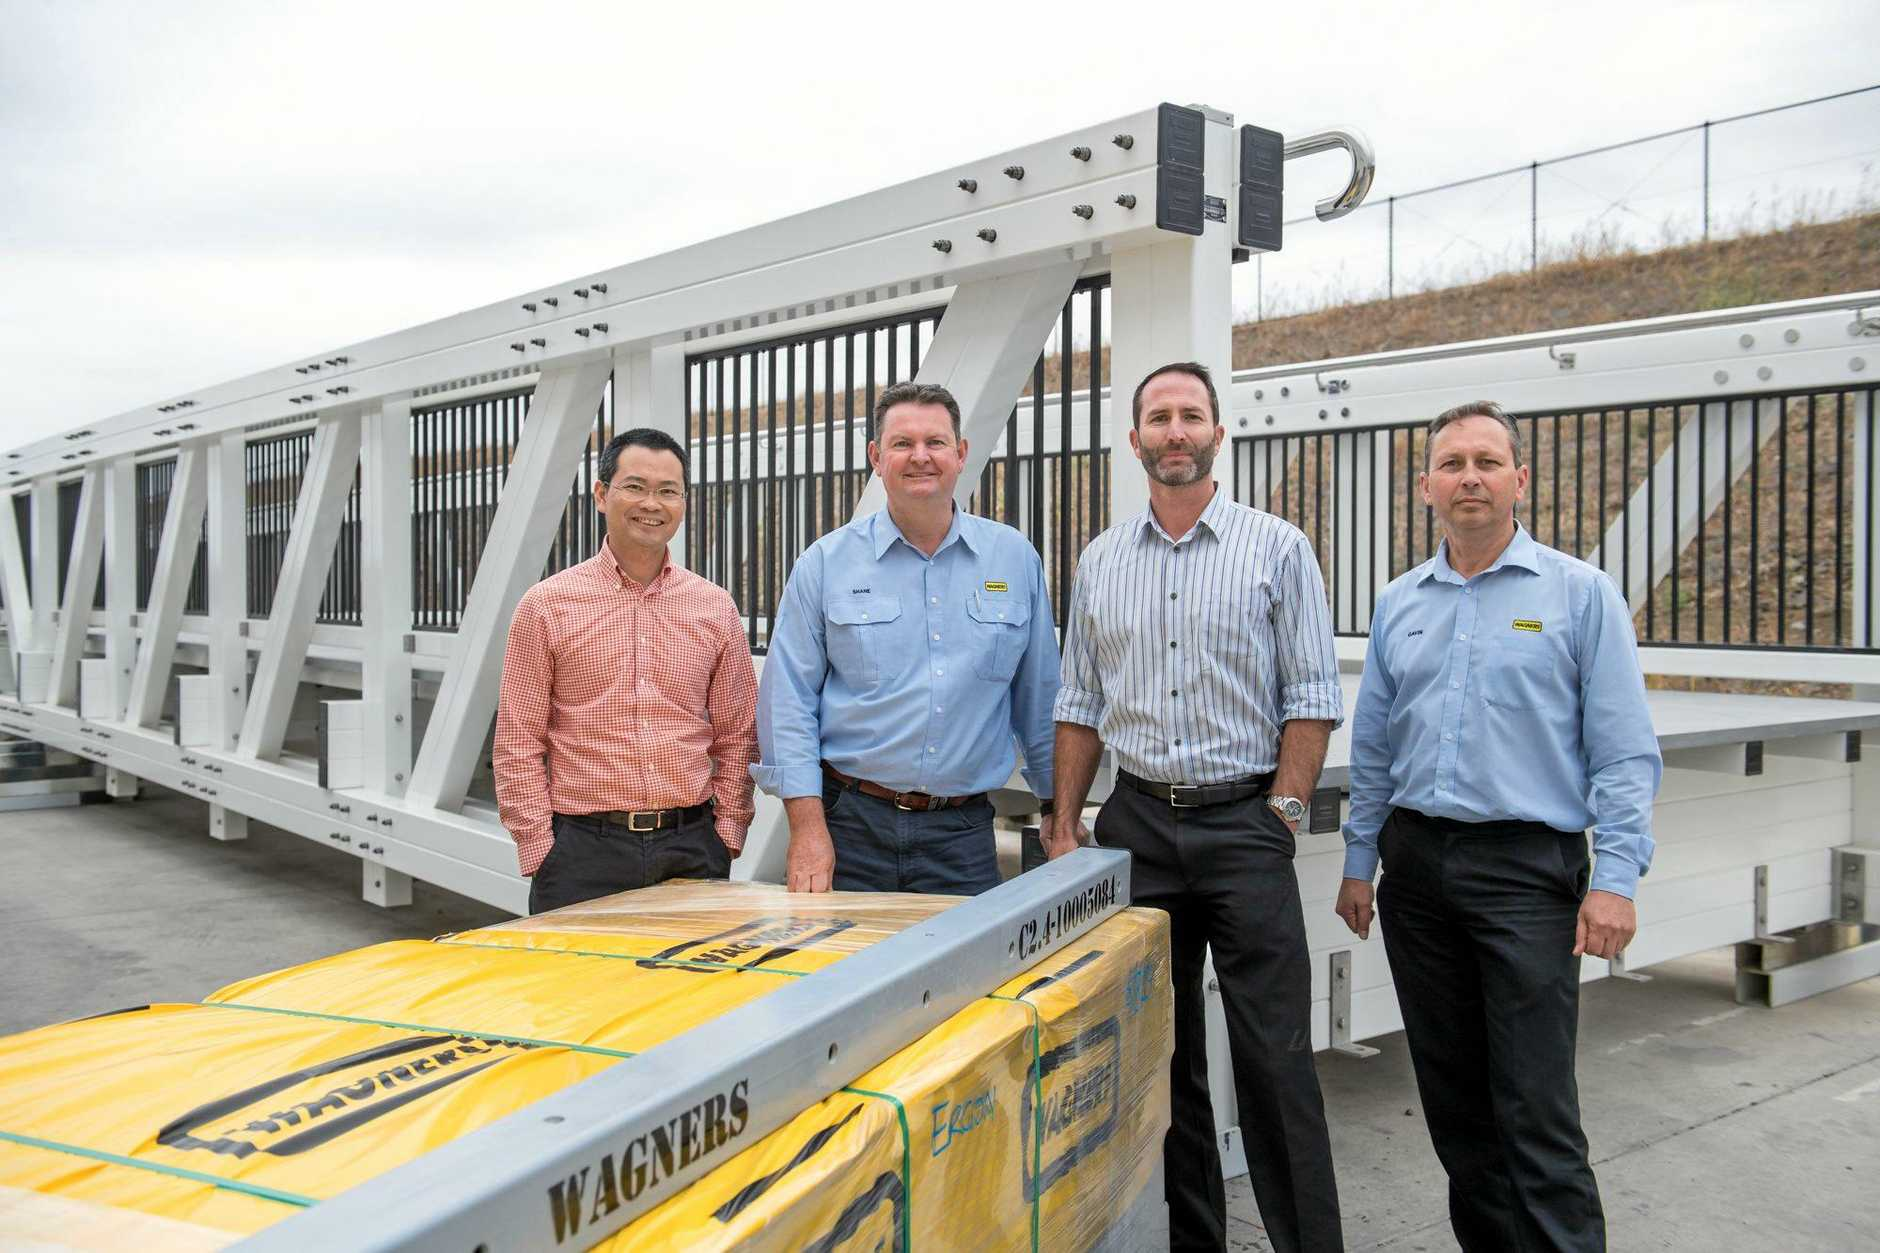 Inspect the new pultrusion technology are (from left) Dr Xuesen Zeng, Wagners General Manager Shane Charles, Professor Peter Schubel, and Wagners Regional Manager Gavin Wilson.